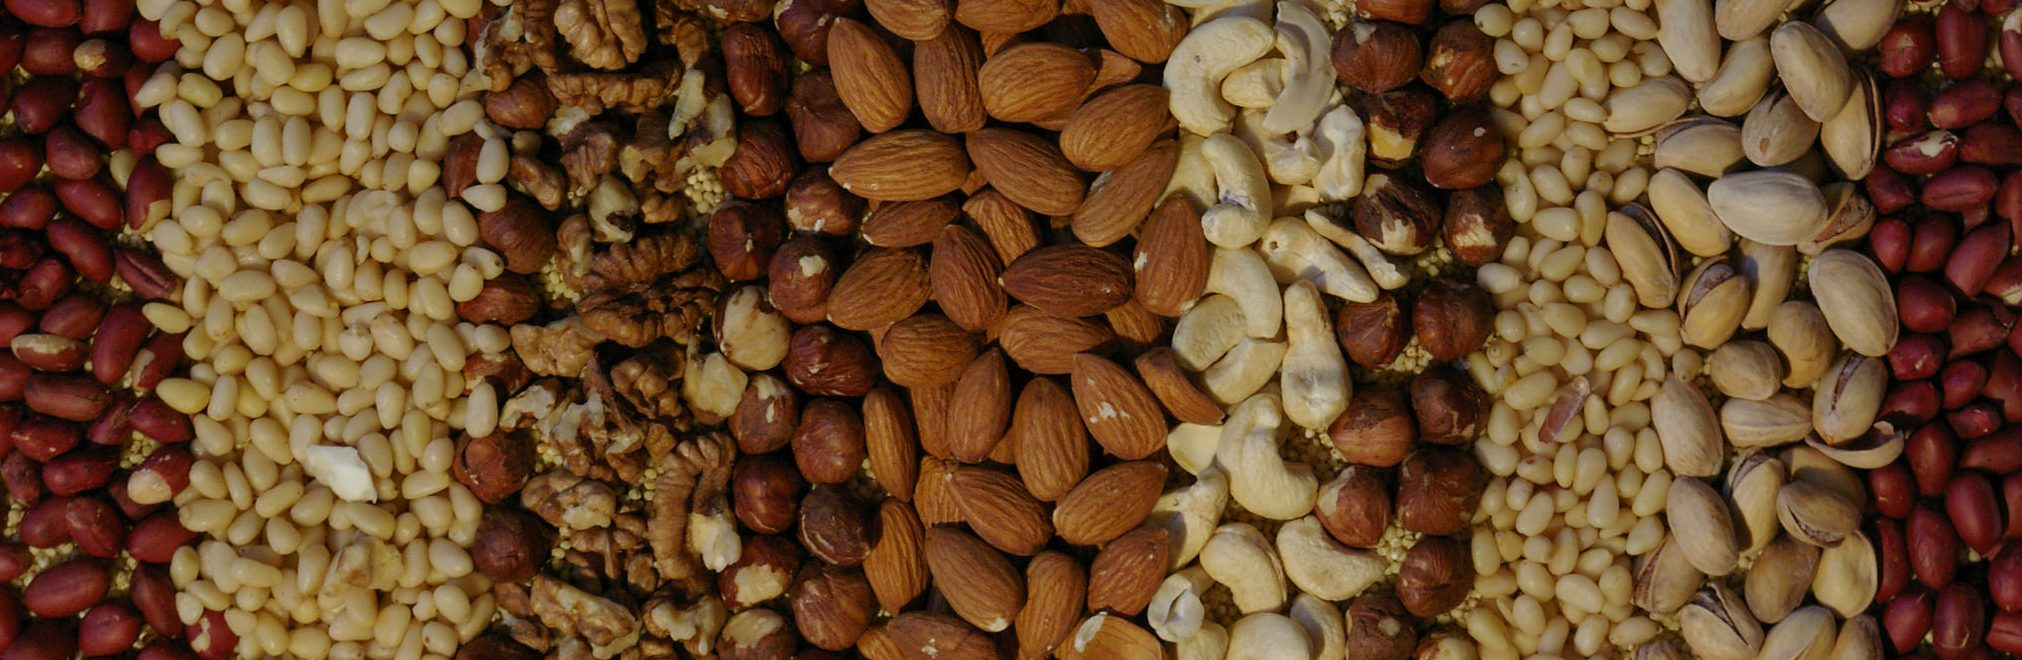 Nuts are a key part of the Paleo diet. Credit: Flickr / Mariya Chorna.